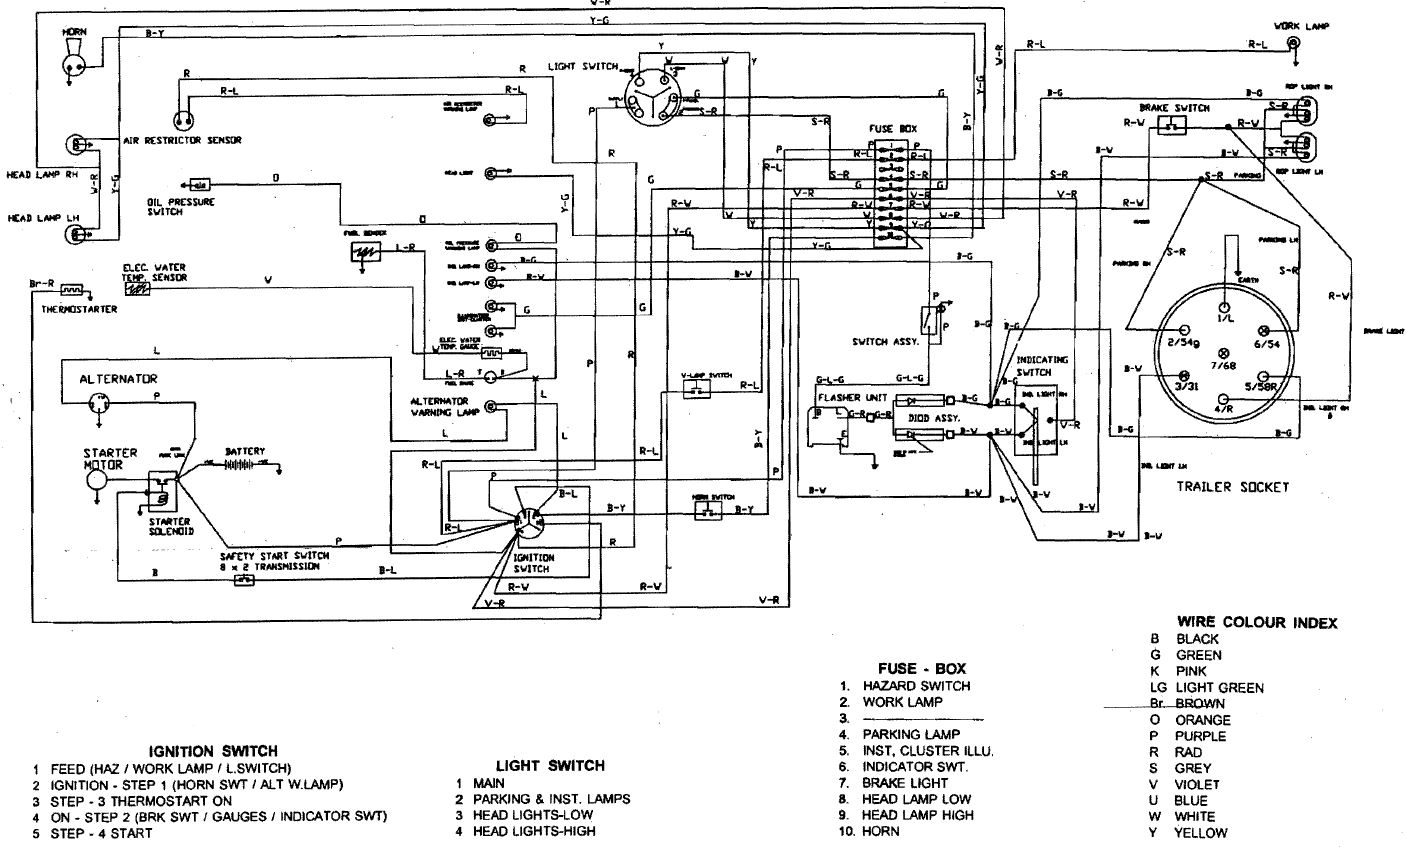 20158463319_b82d524c3d_o ignition switch wiring diagram tractor wiring diagram at edmiracle.co